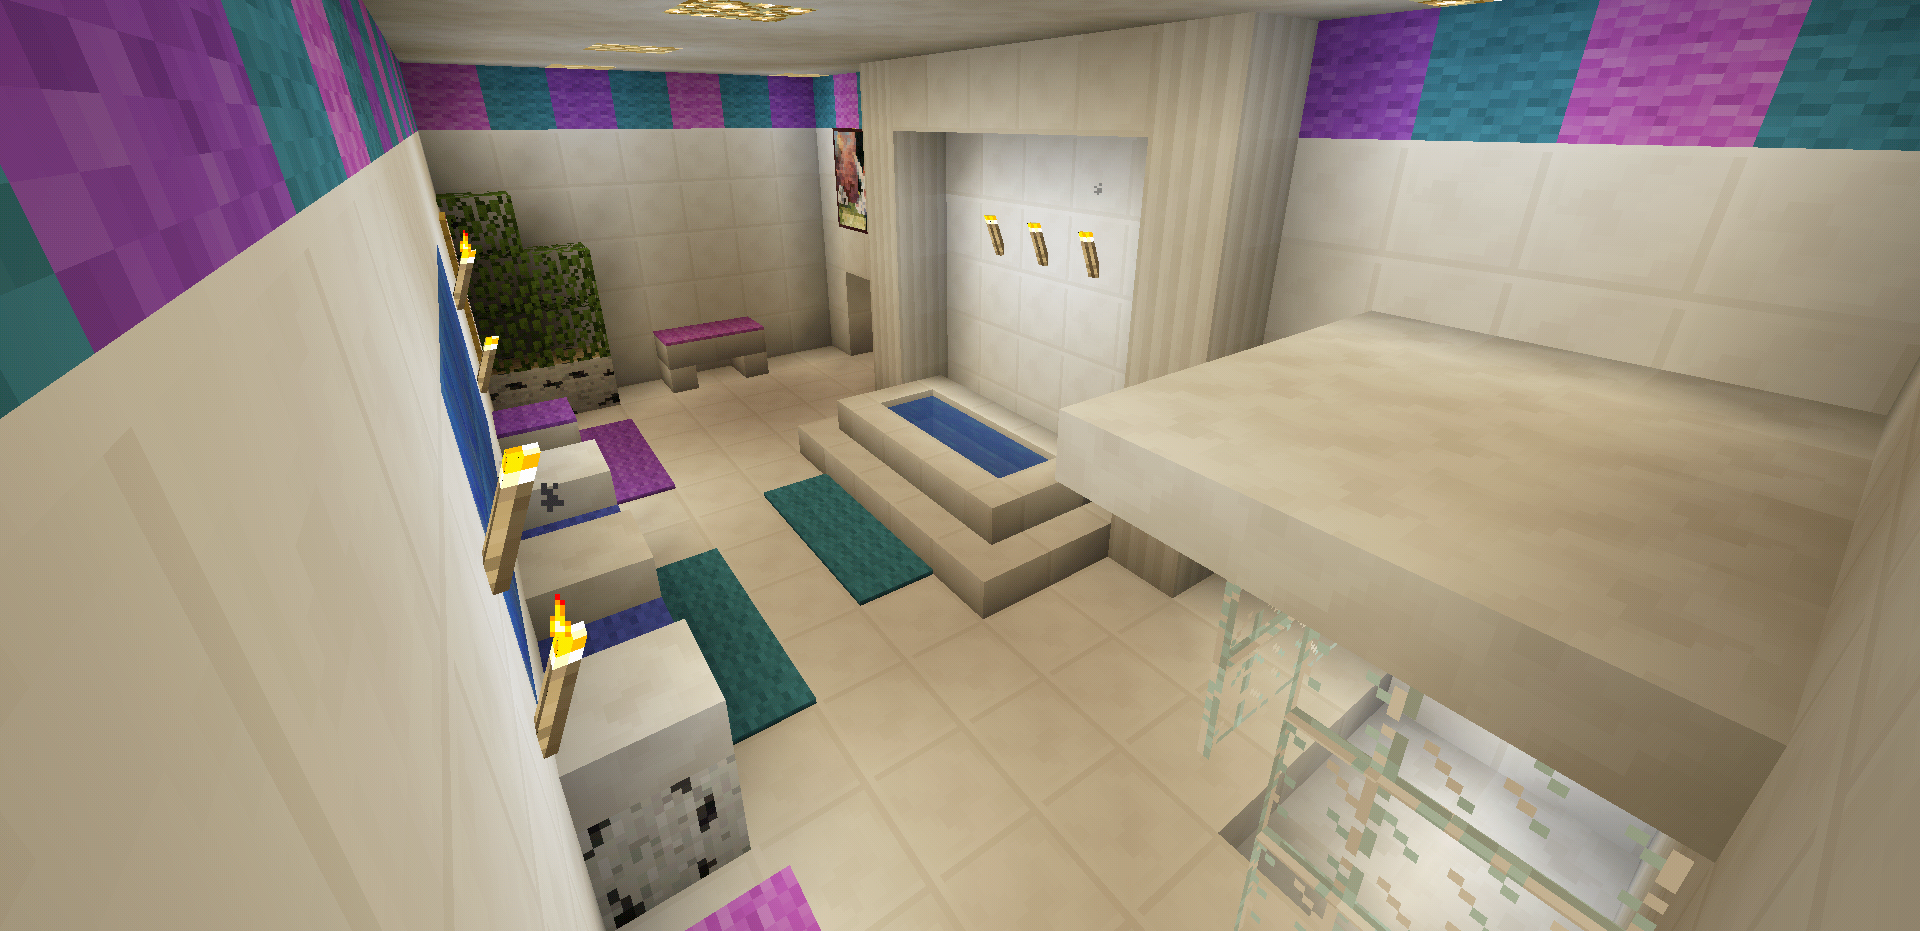 Minecraft bathroom pink girl wallpaper wall design shower for Bathroom designs minecraft